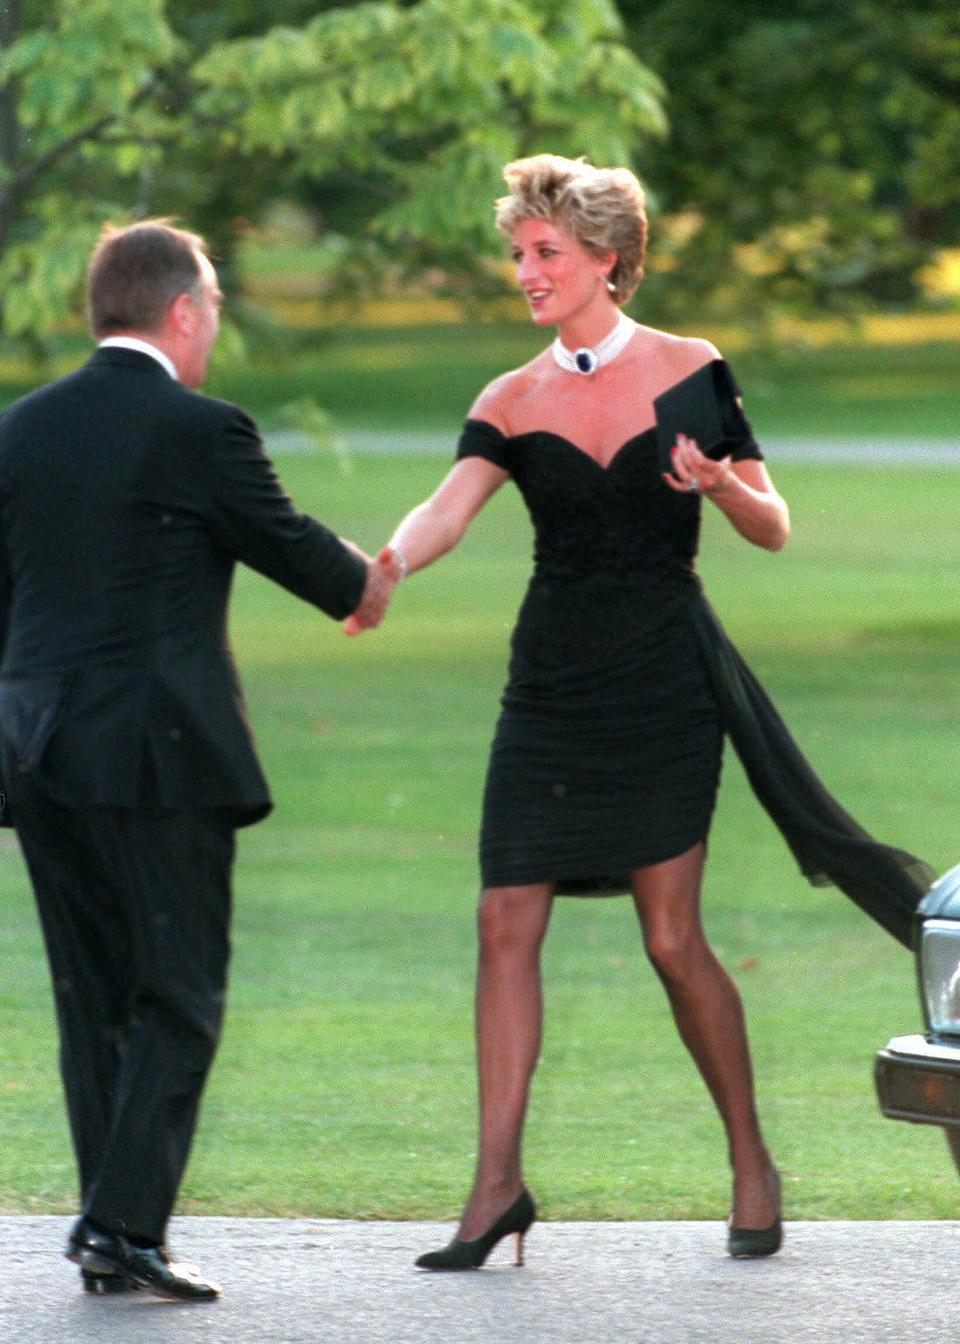 LONDON - NOVEMBER 20:  Diana, Princess of Wales, wearing a stunning black dress commissioned from Christina Stambolian, attends the Vanity Fair party at the Serpentine Gallery on November 20, 1994 in London, England.  The famous black